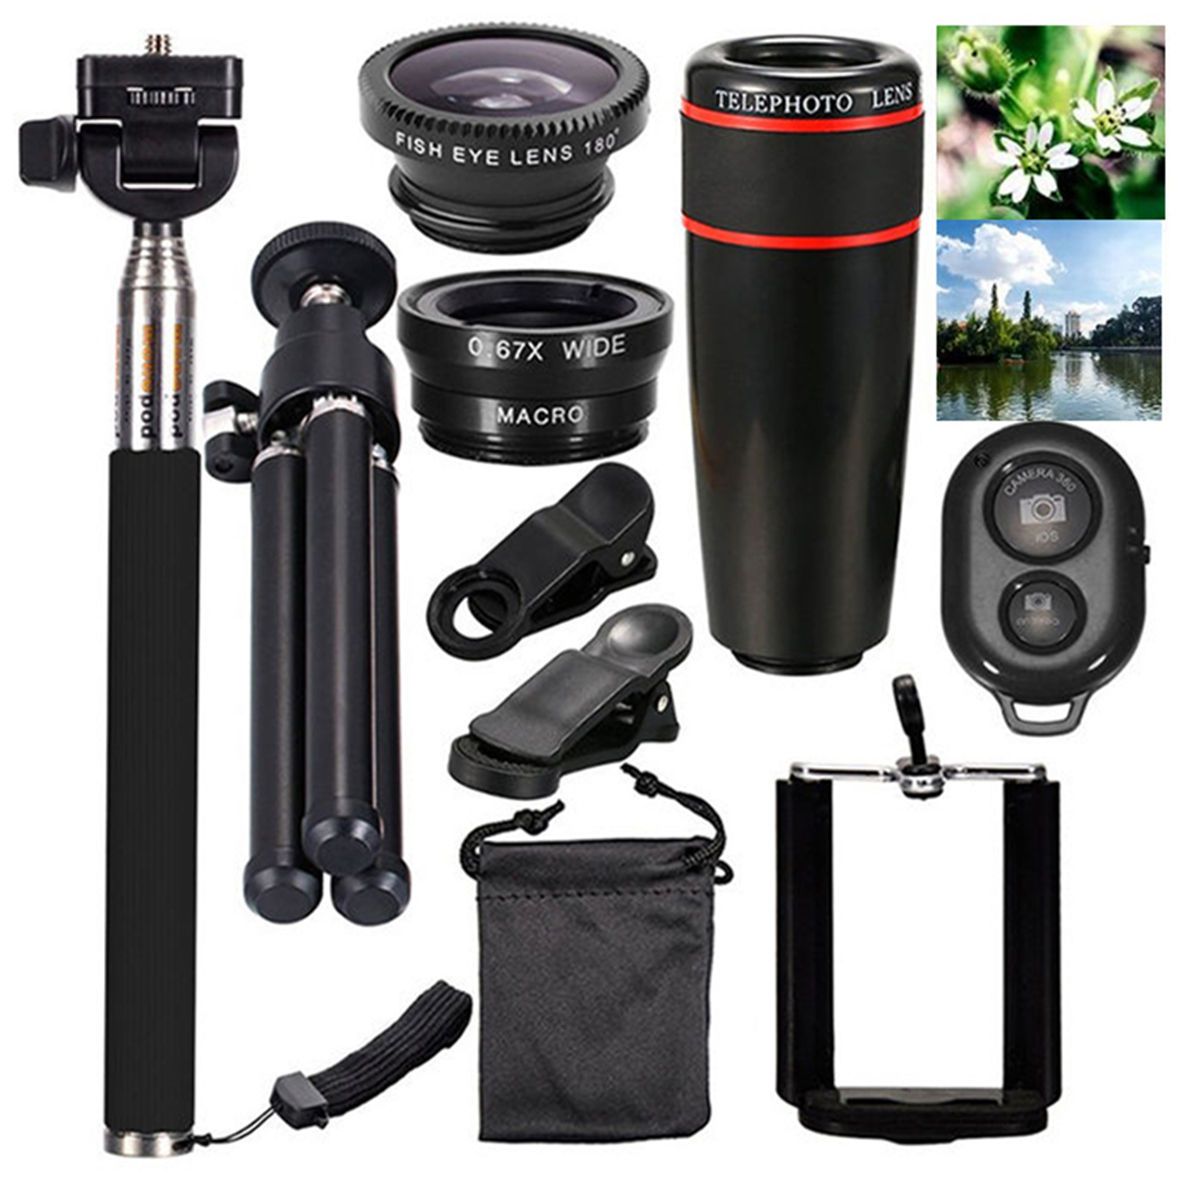 the latest 3476f b9008 Details about All Accessories Phone Camera Lens Top Travel Kit For iPhone X  Samsung S9 Note